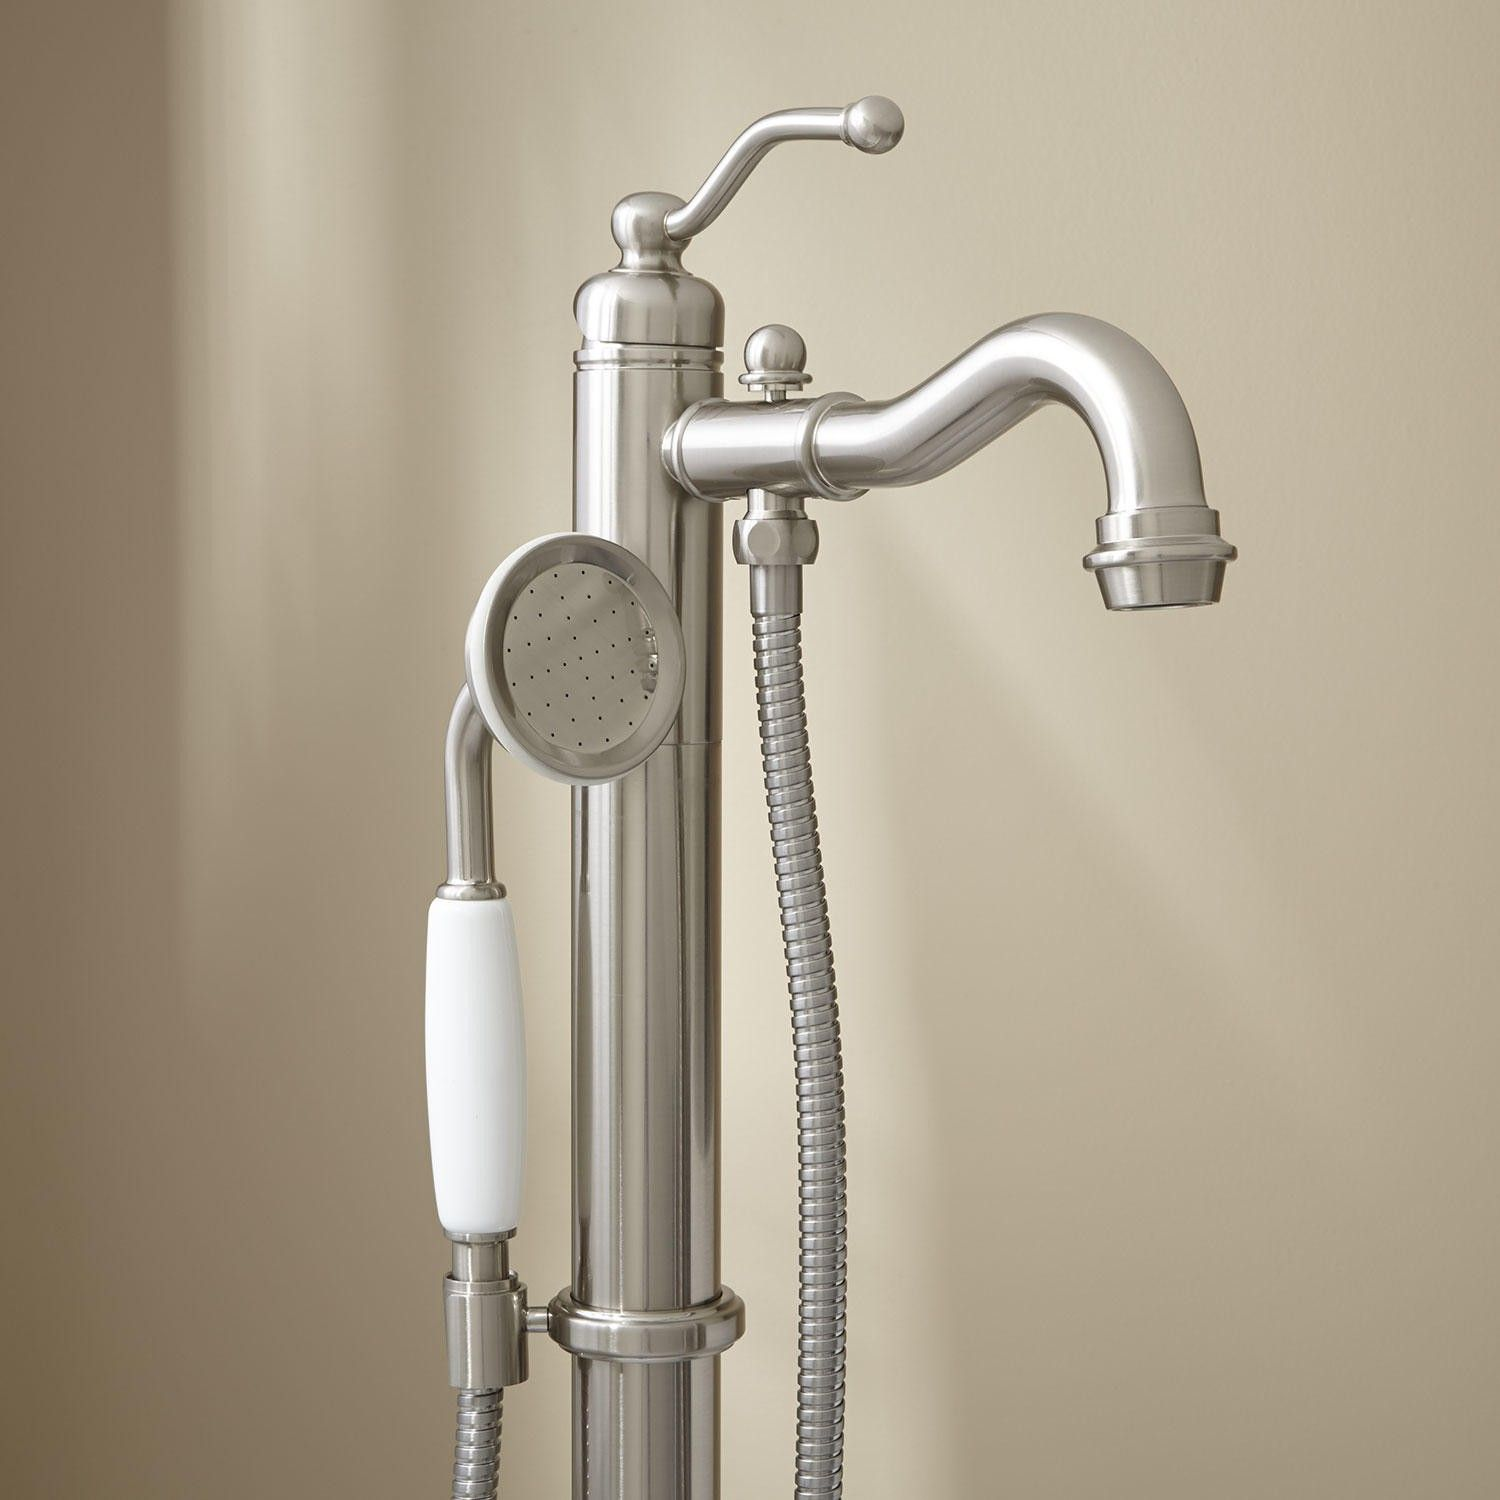 Leta Freestanding Tub Faucet with Hand Shower | Freestanding tub ...